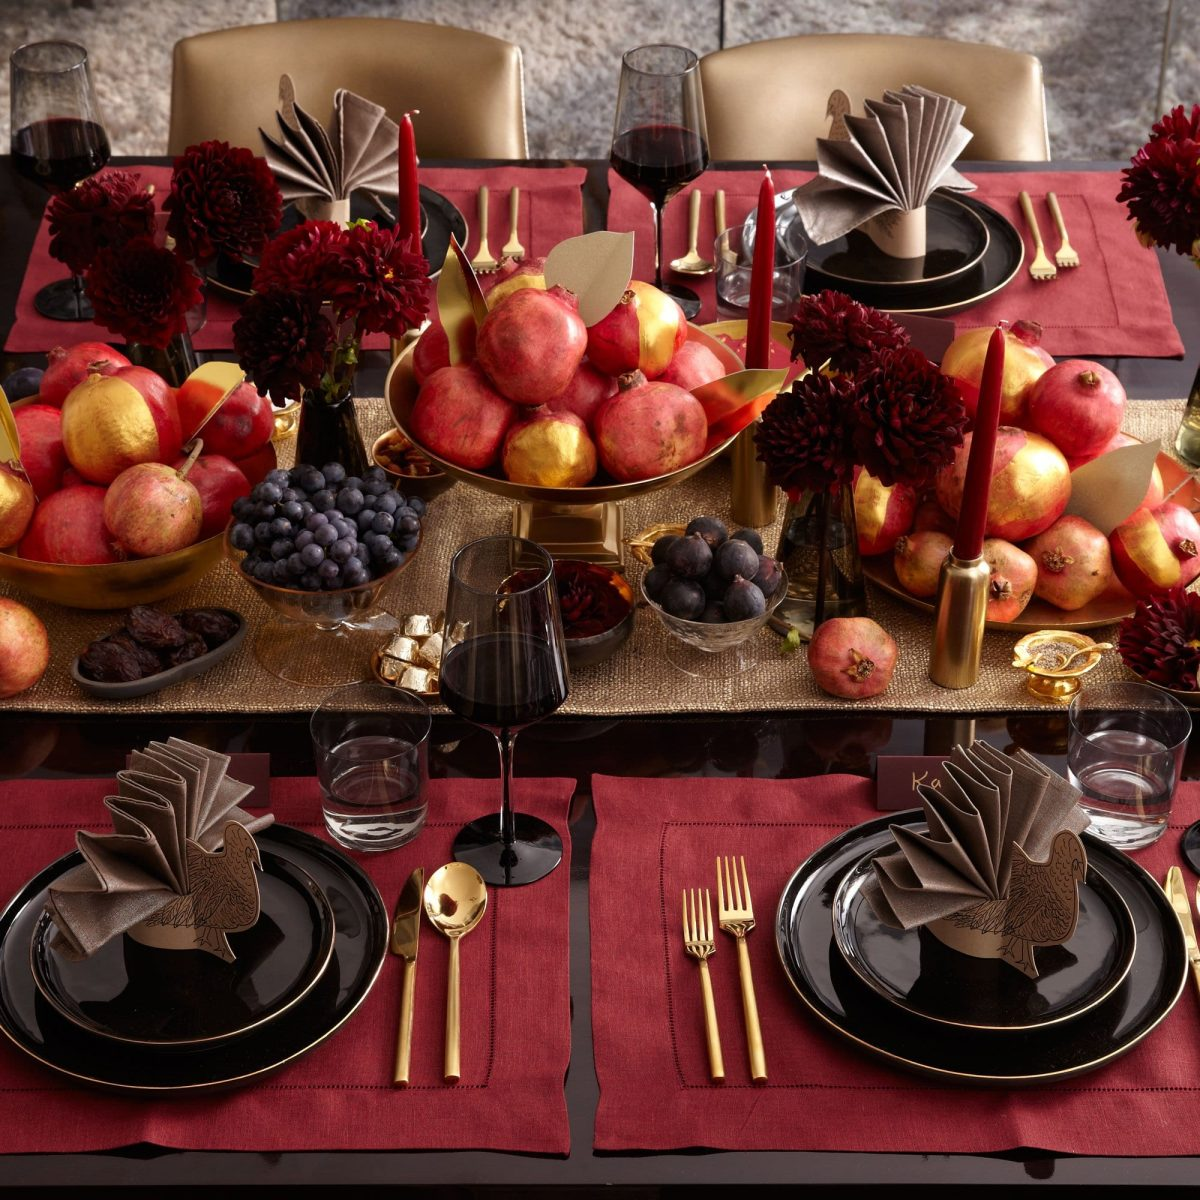 Darcy Miller Designs Pomegranate Thanksgiving Table Thanksgiving, Tablescape, Table Décor, Fall Décor, Autumn Décor, Pomegranate, Table Setting, Centerpiece Inspiration, Gold Paint